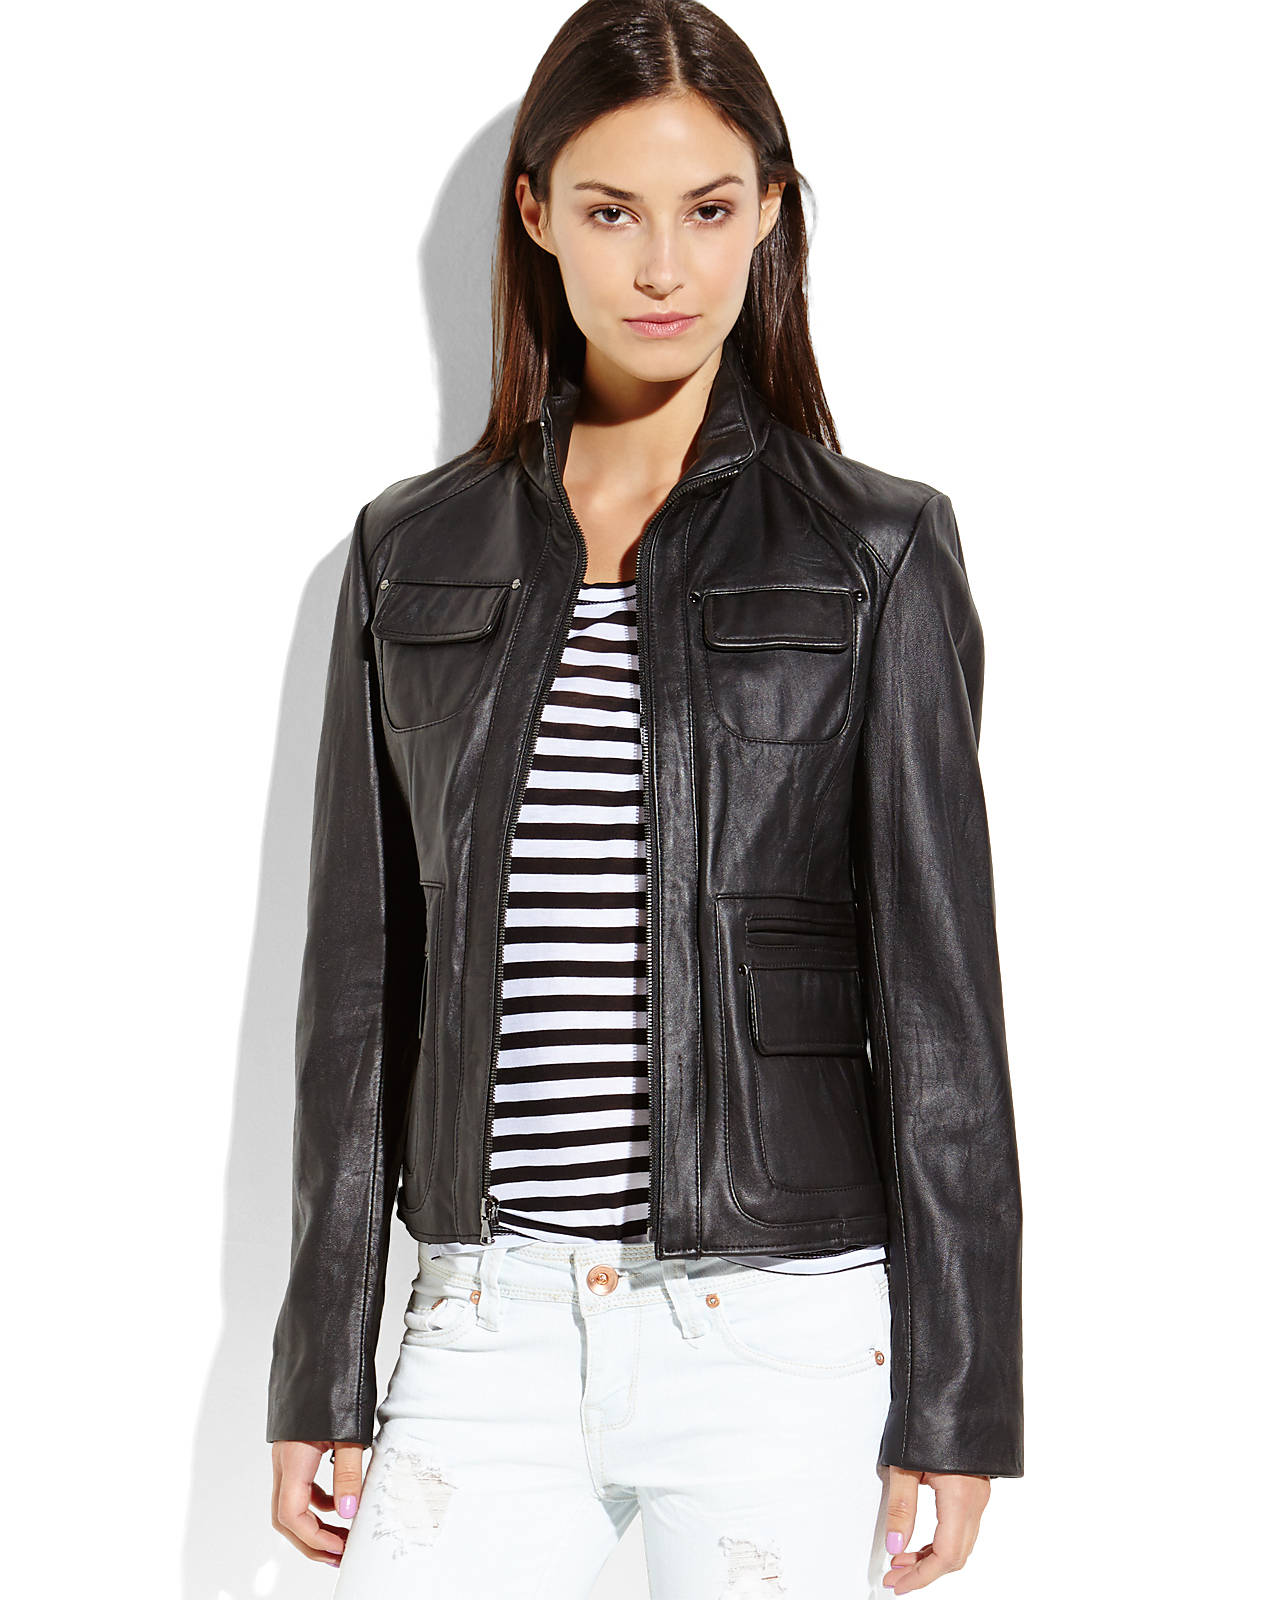 KENNETH COLE Black Six-Pocket Leather Jacket | Shop Women's Clothing & Accessories | Century 21 Department Store